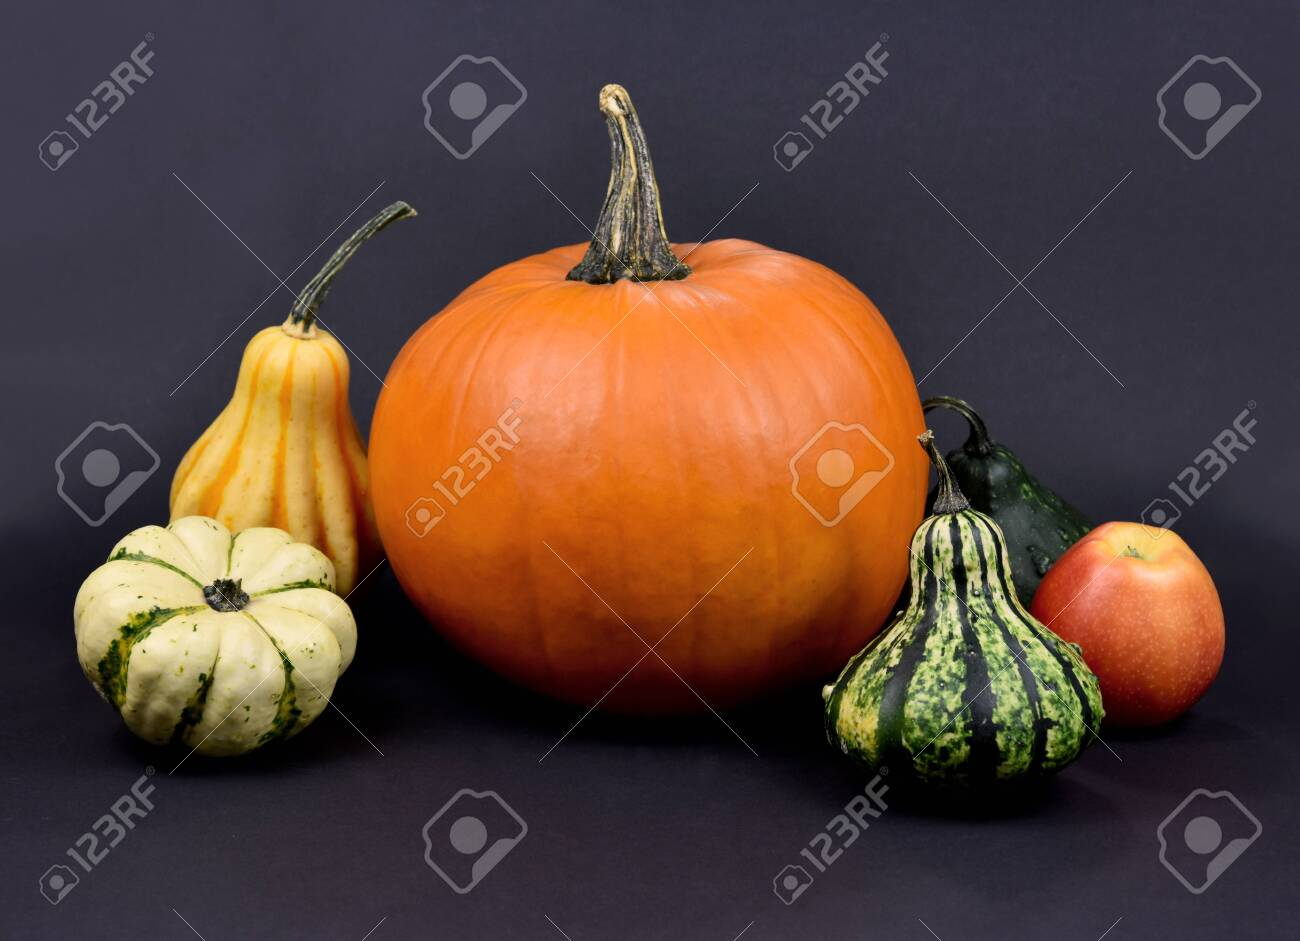 Different types of pumpkins and squash autumn still life stock images. Pile of pumpkins isolated on a dark background. Decorative pumpkins autumn still life stock photo. Beautiful autumn decorations - 155313206